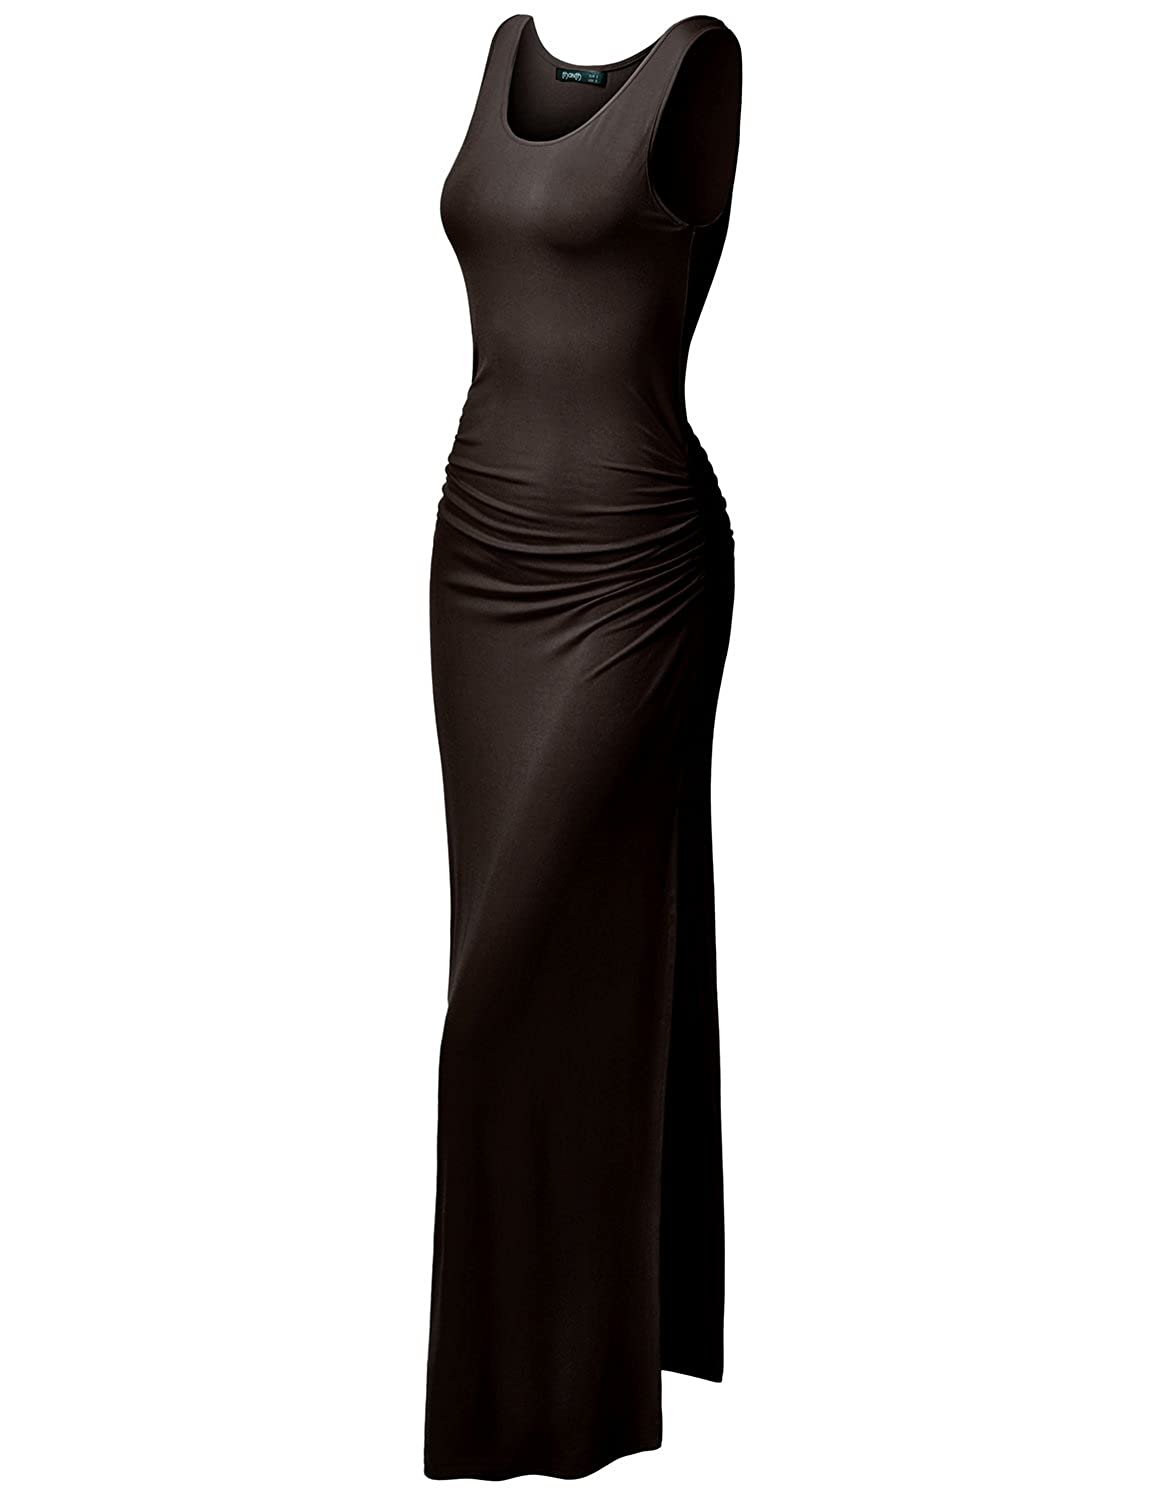 1b4910159d2 Womens Sleeveless Side Shirring Waist Maxi and Midi Dress   2Styles differ  by length and Maxi dress has side slit ...